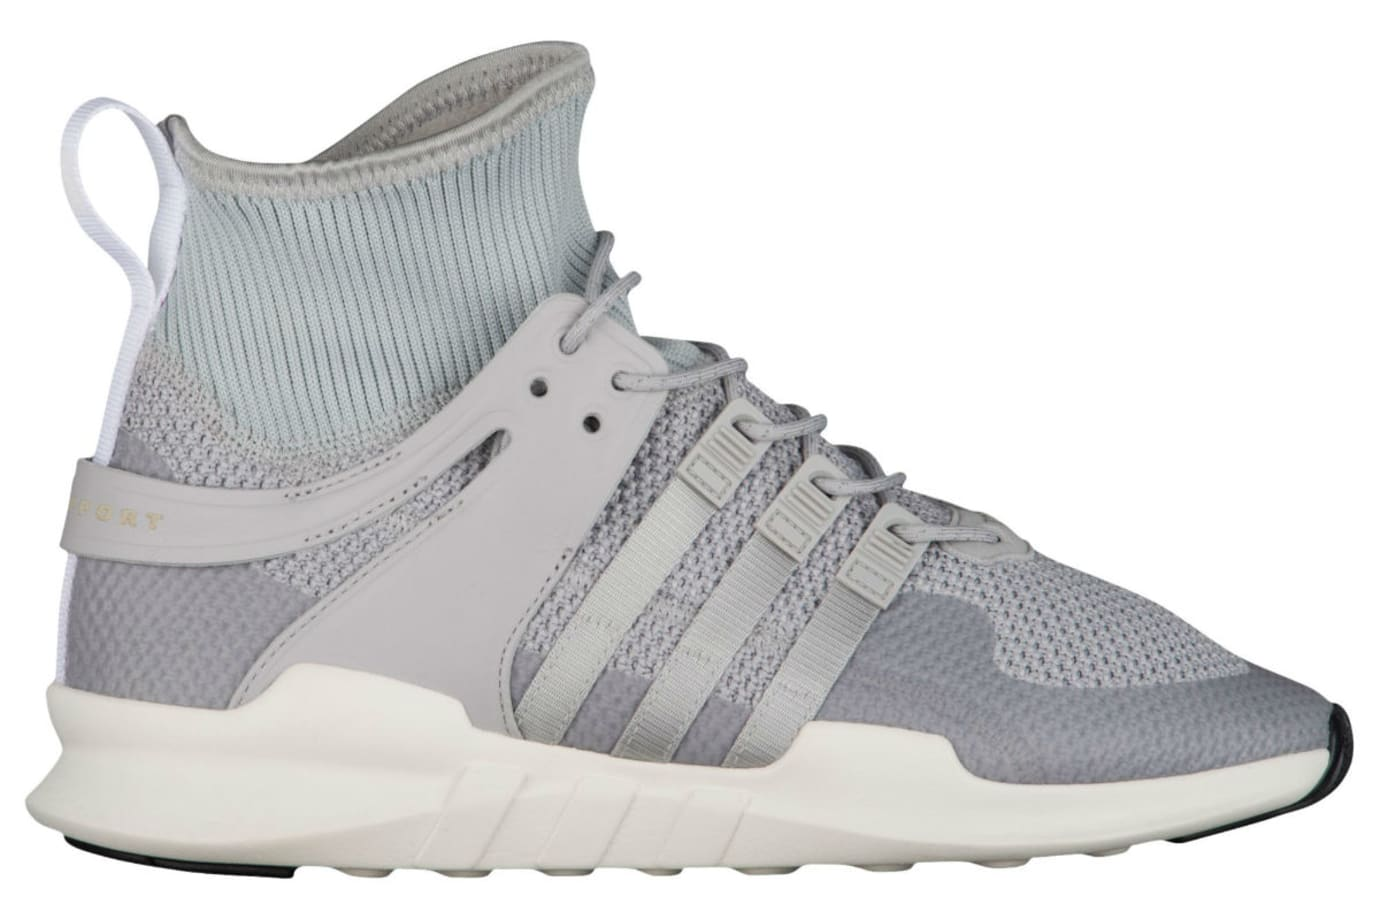 Adidas EQT Support ADV Winter Grey Two White Release Date Profile